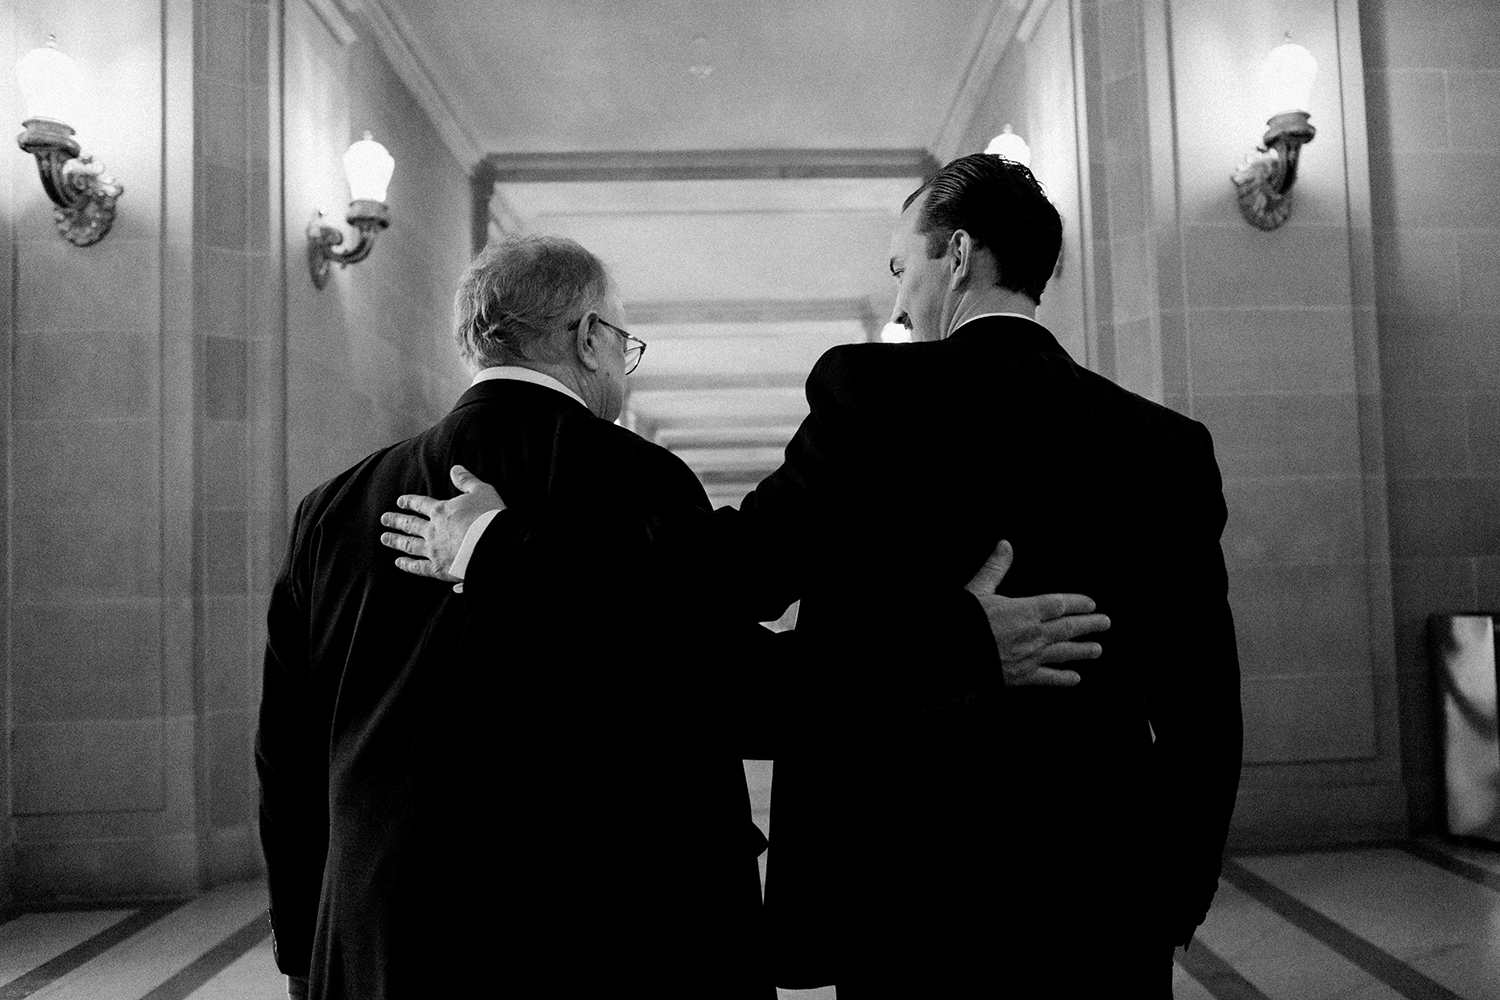 Groom walking with his father at his wedding in San Francisco City Hall.